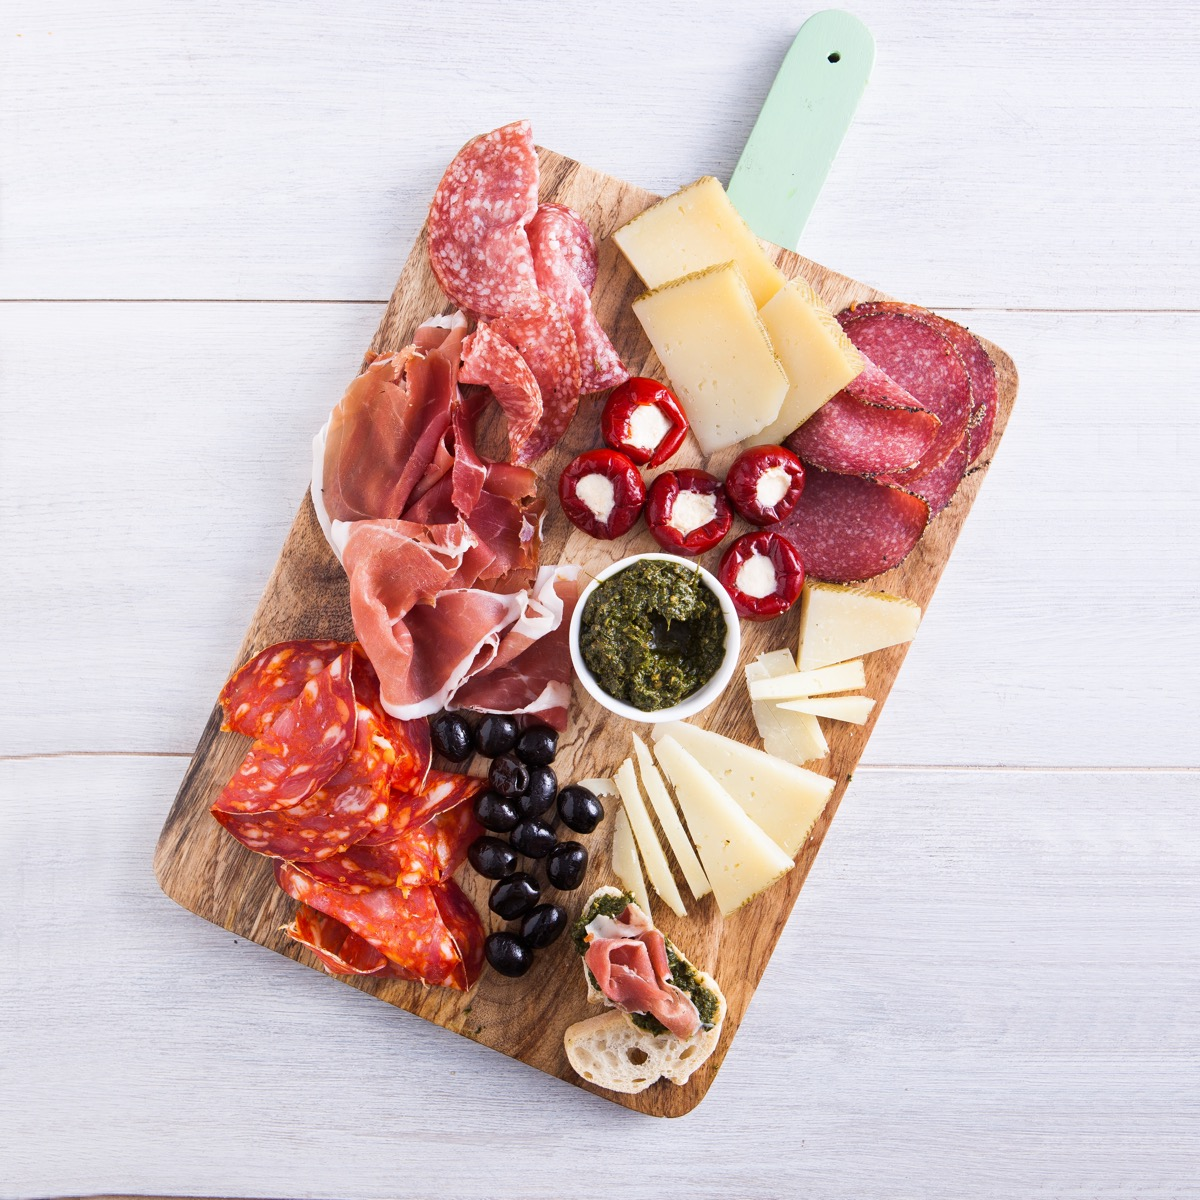 Antipasti Board